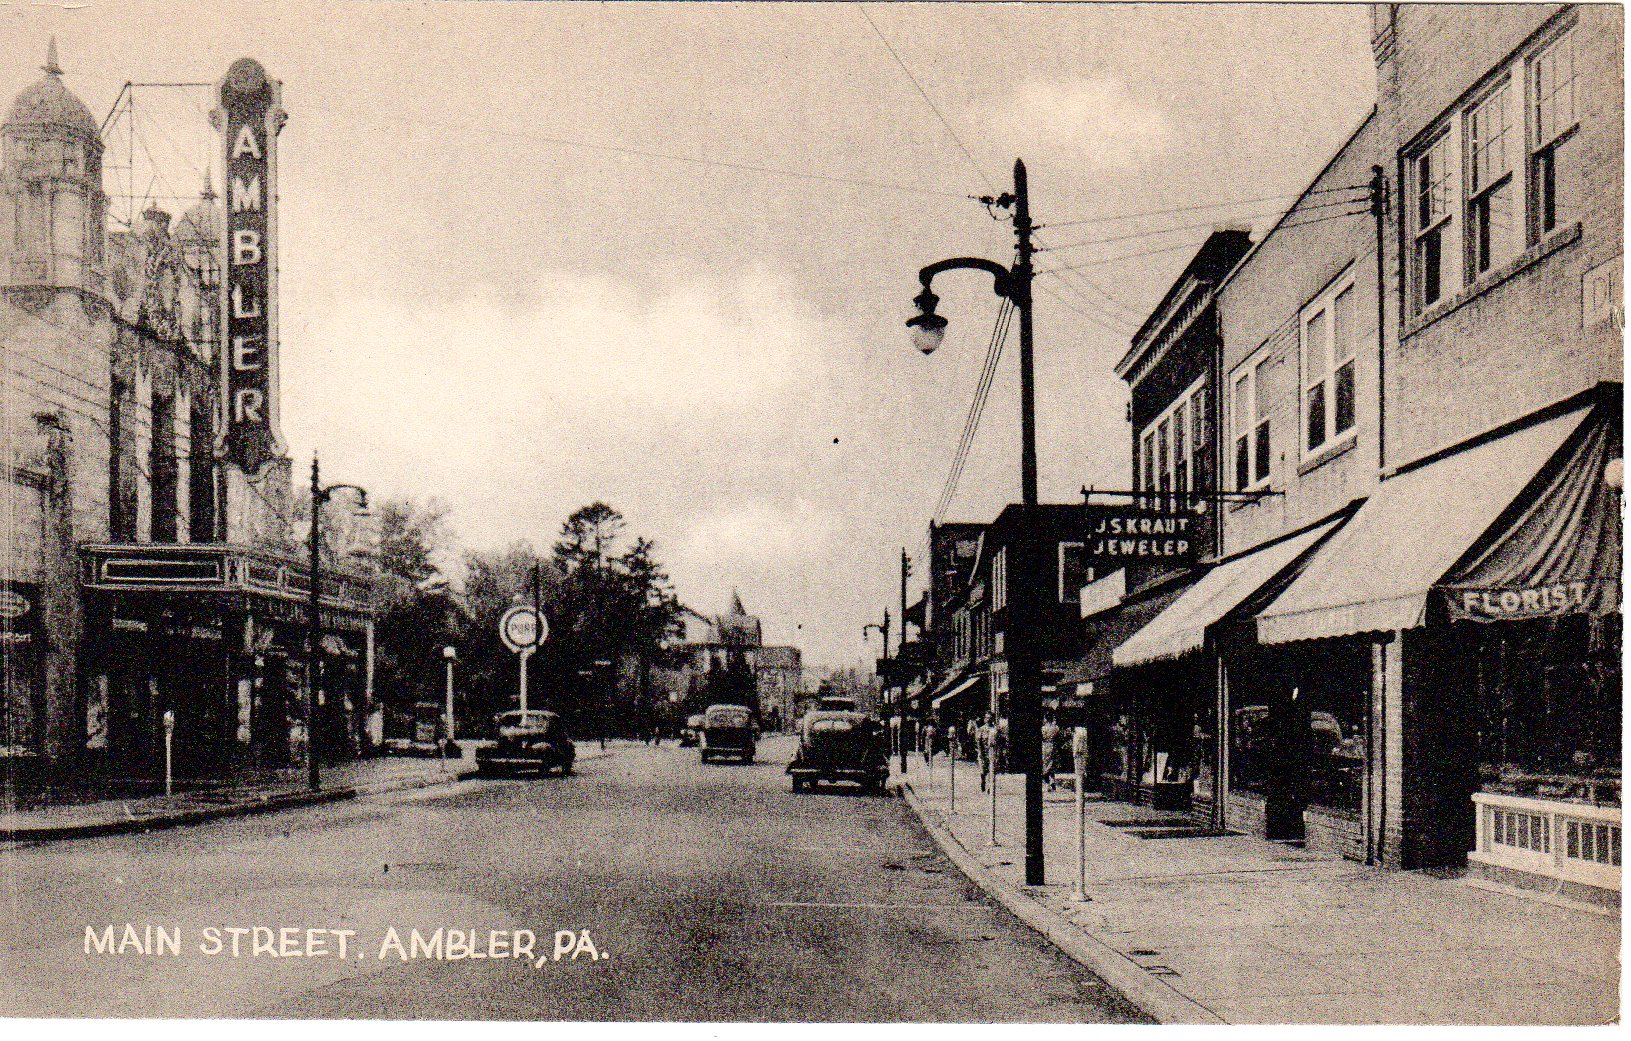 Post Card Collection (E Simon)_2682_02_Main St, Ambler, Pa